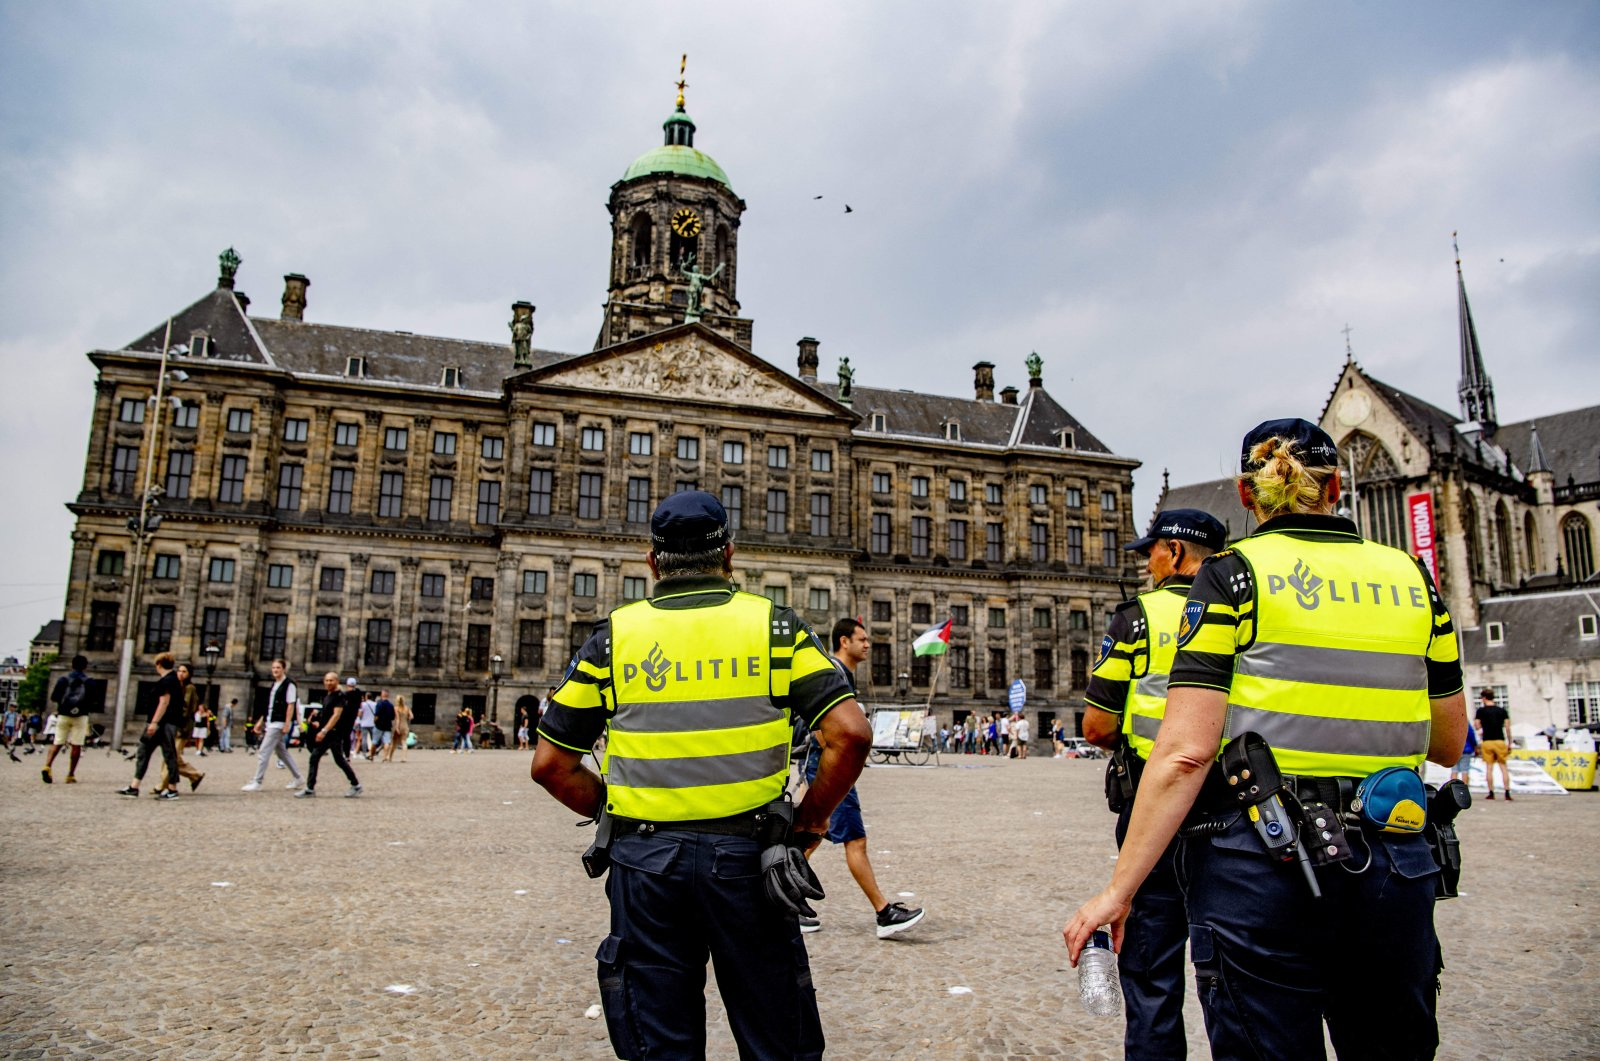 Police prepare for a demonstration on the Dam square in Amsterdam, Netherlands, on June 27, 2020. (Reuters File Photo)